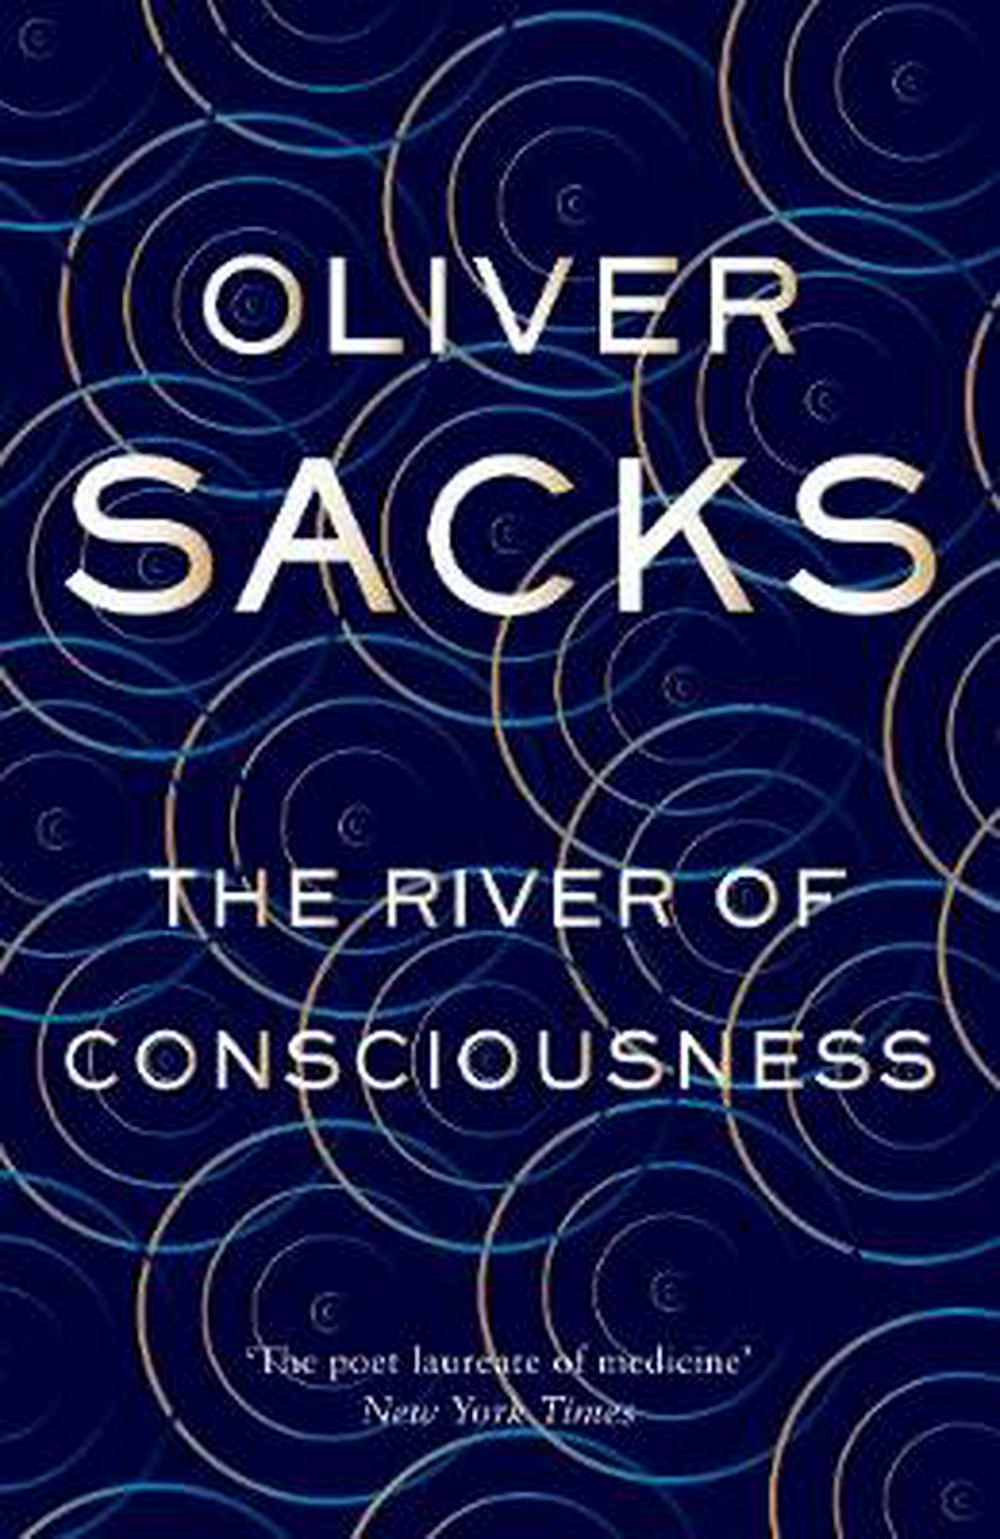 The River of Consciousness by Oliver Sacks, ISBN: 9781447263661